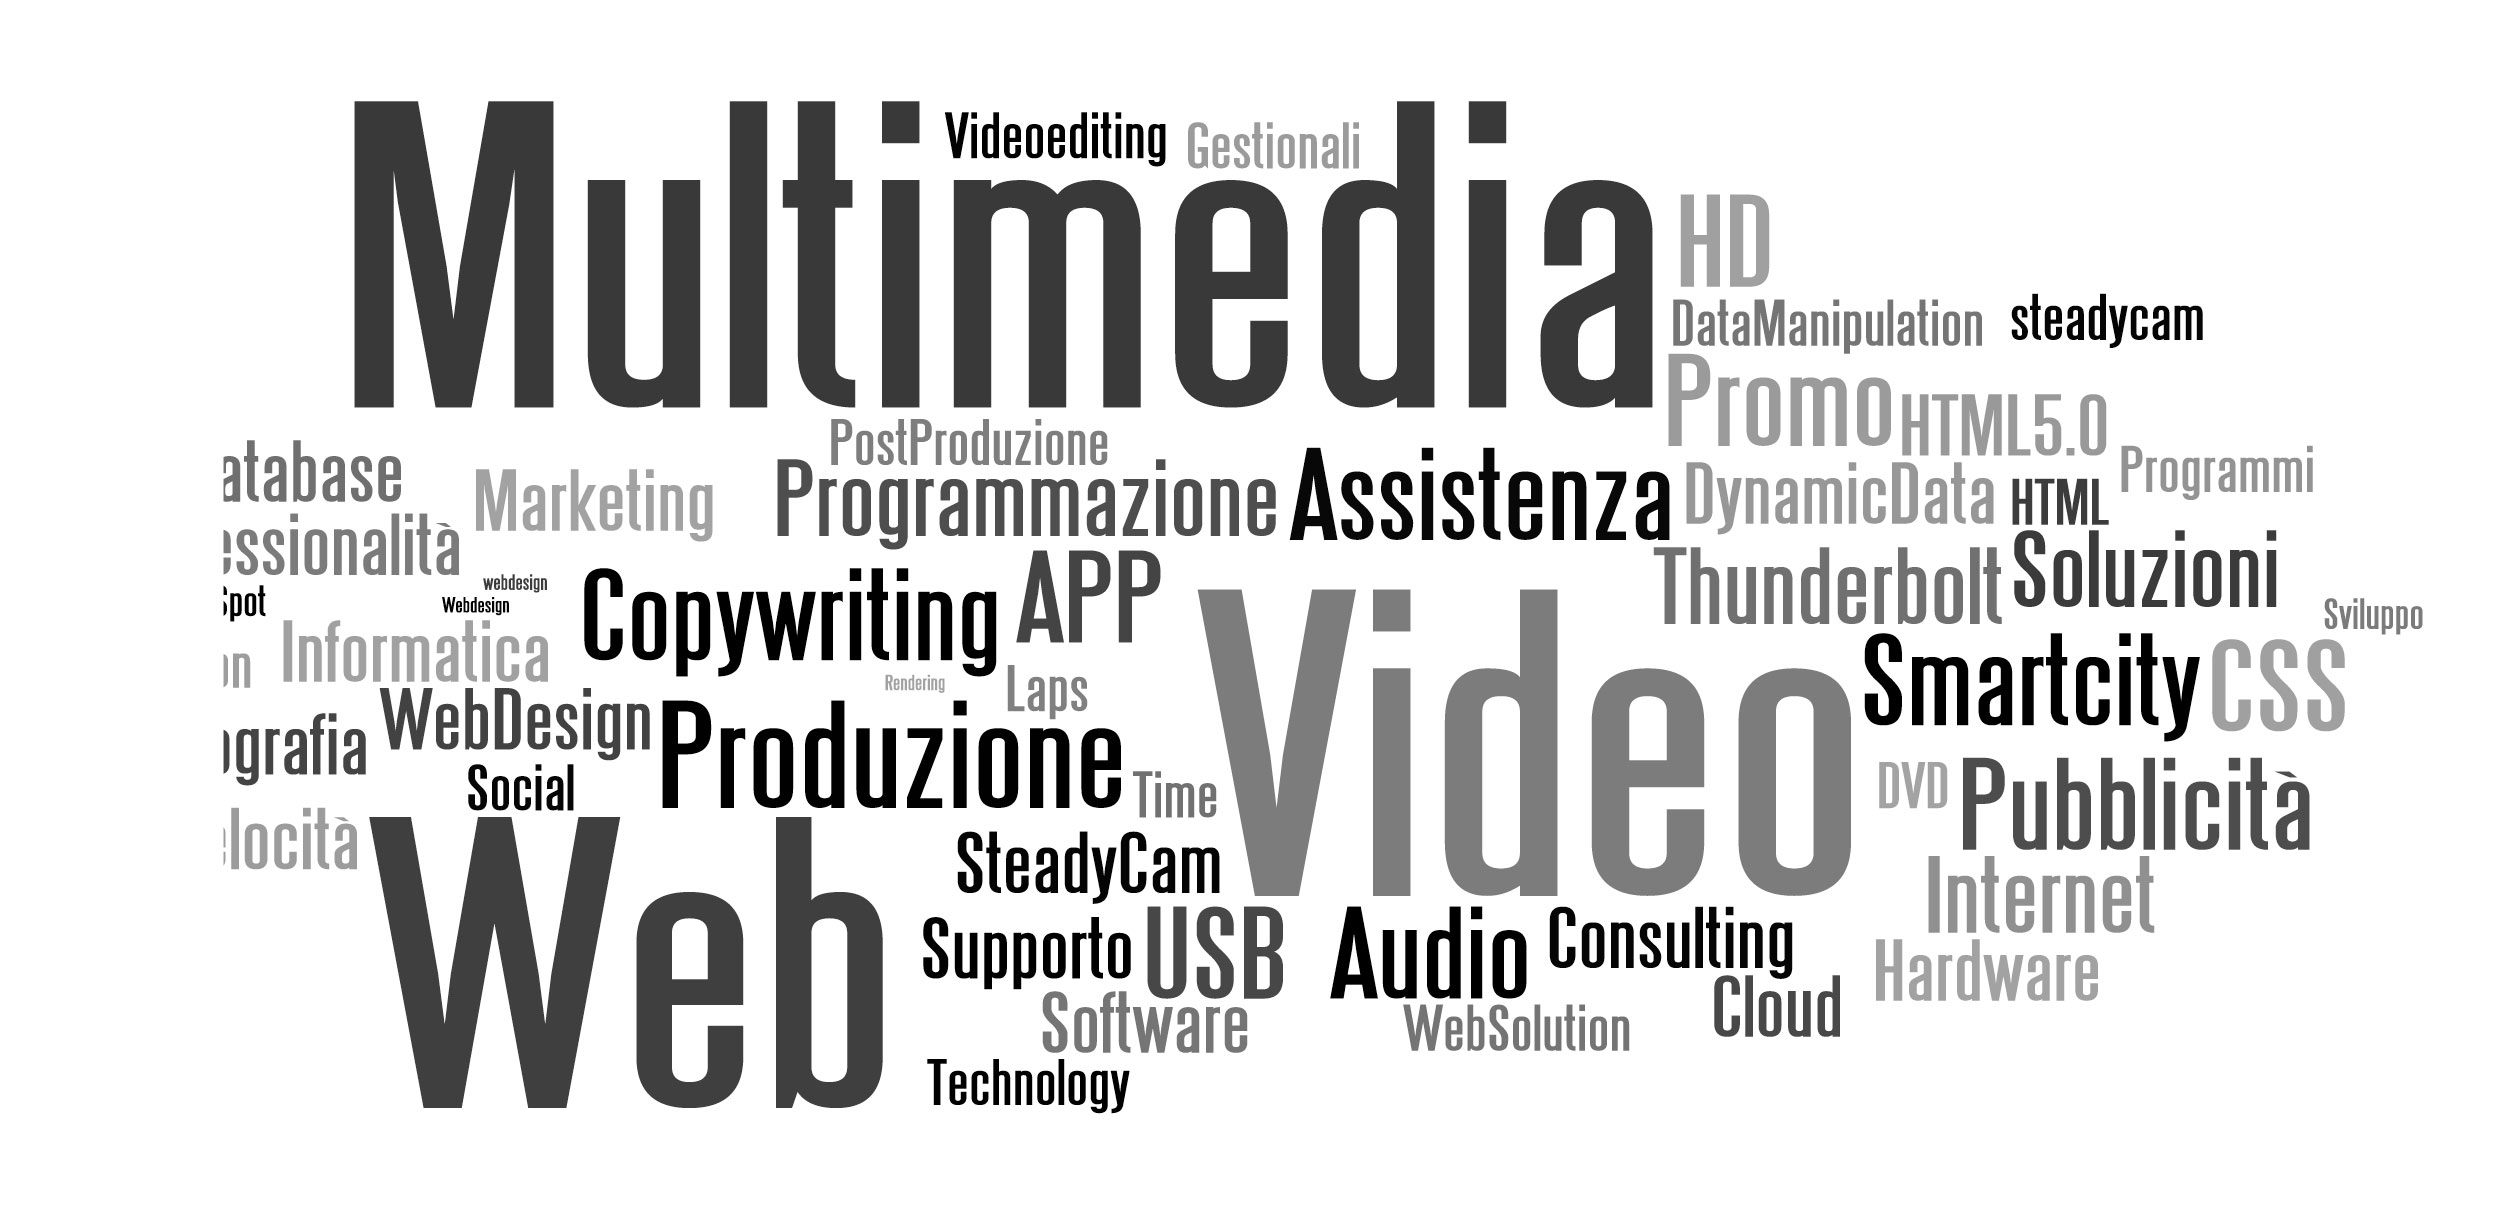 http://www.made-lab.it/wp-content/uploads/2018/07/madelab-tagcloud-4.jpg